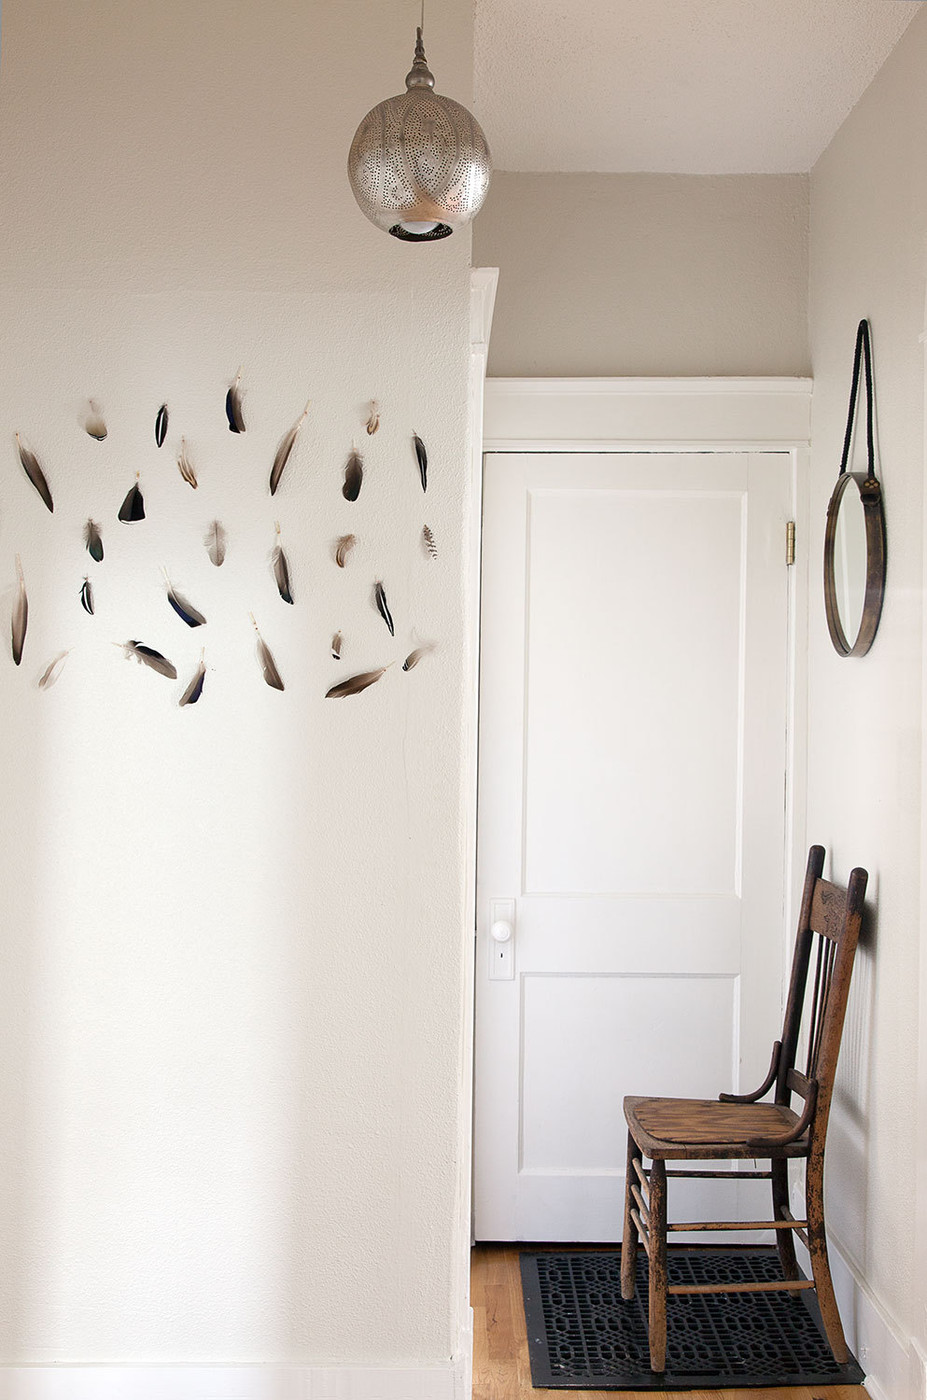 A simple yet stylish entryway